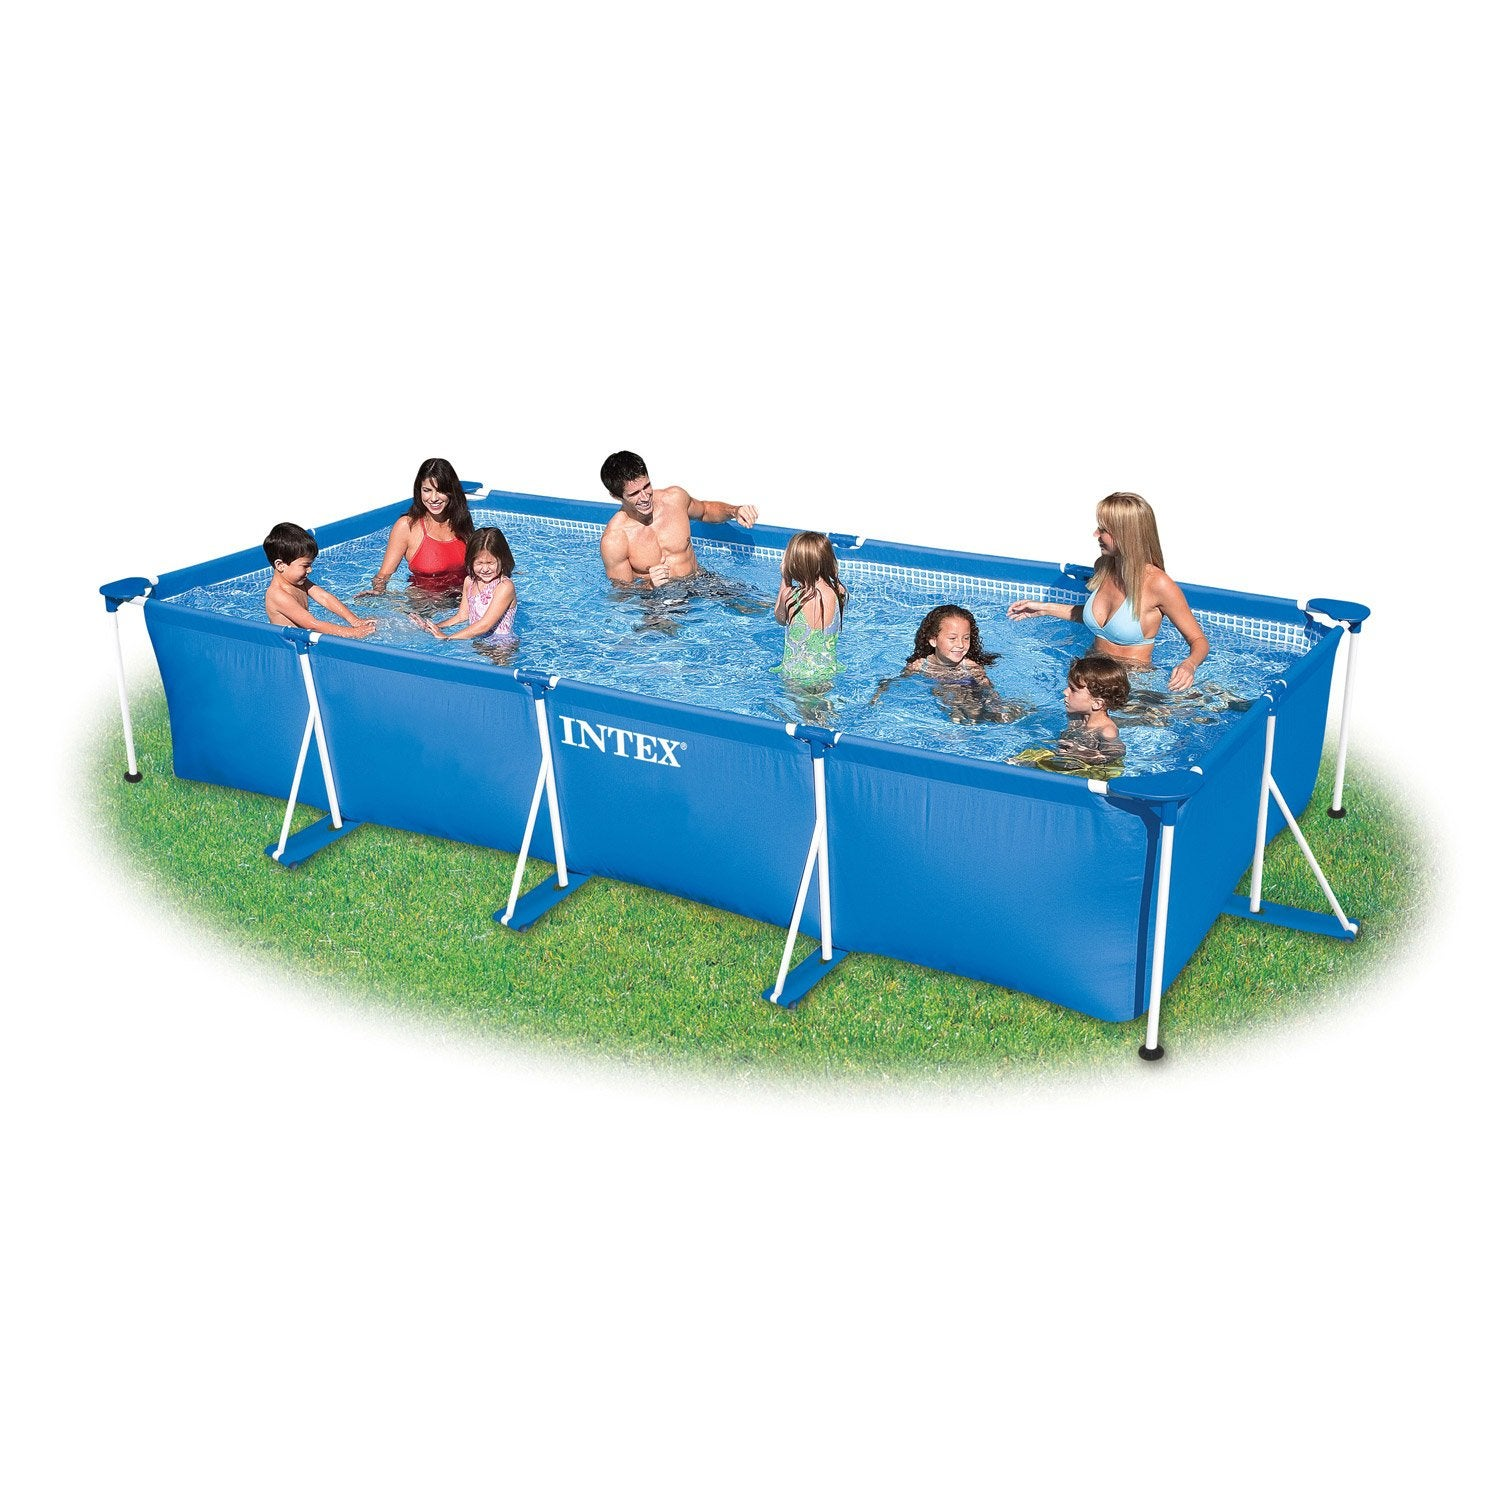 Piscine hors sol autoportante tubulaire intex l x l for Piscine sur sol